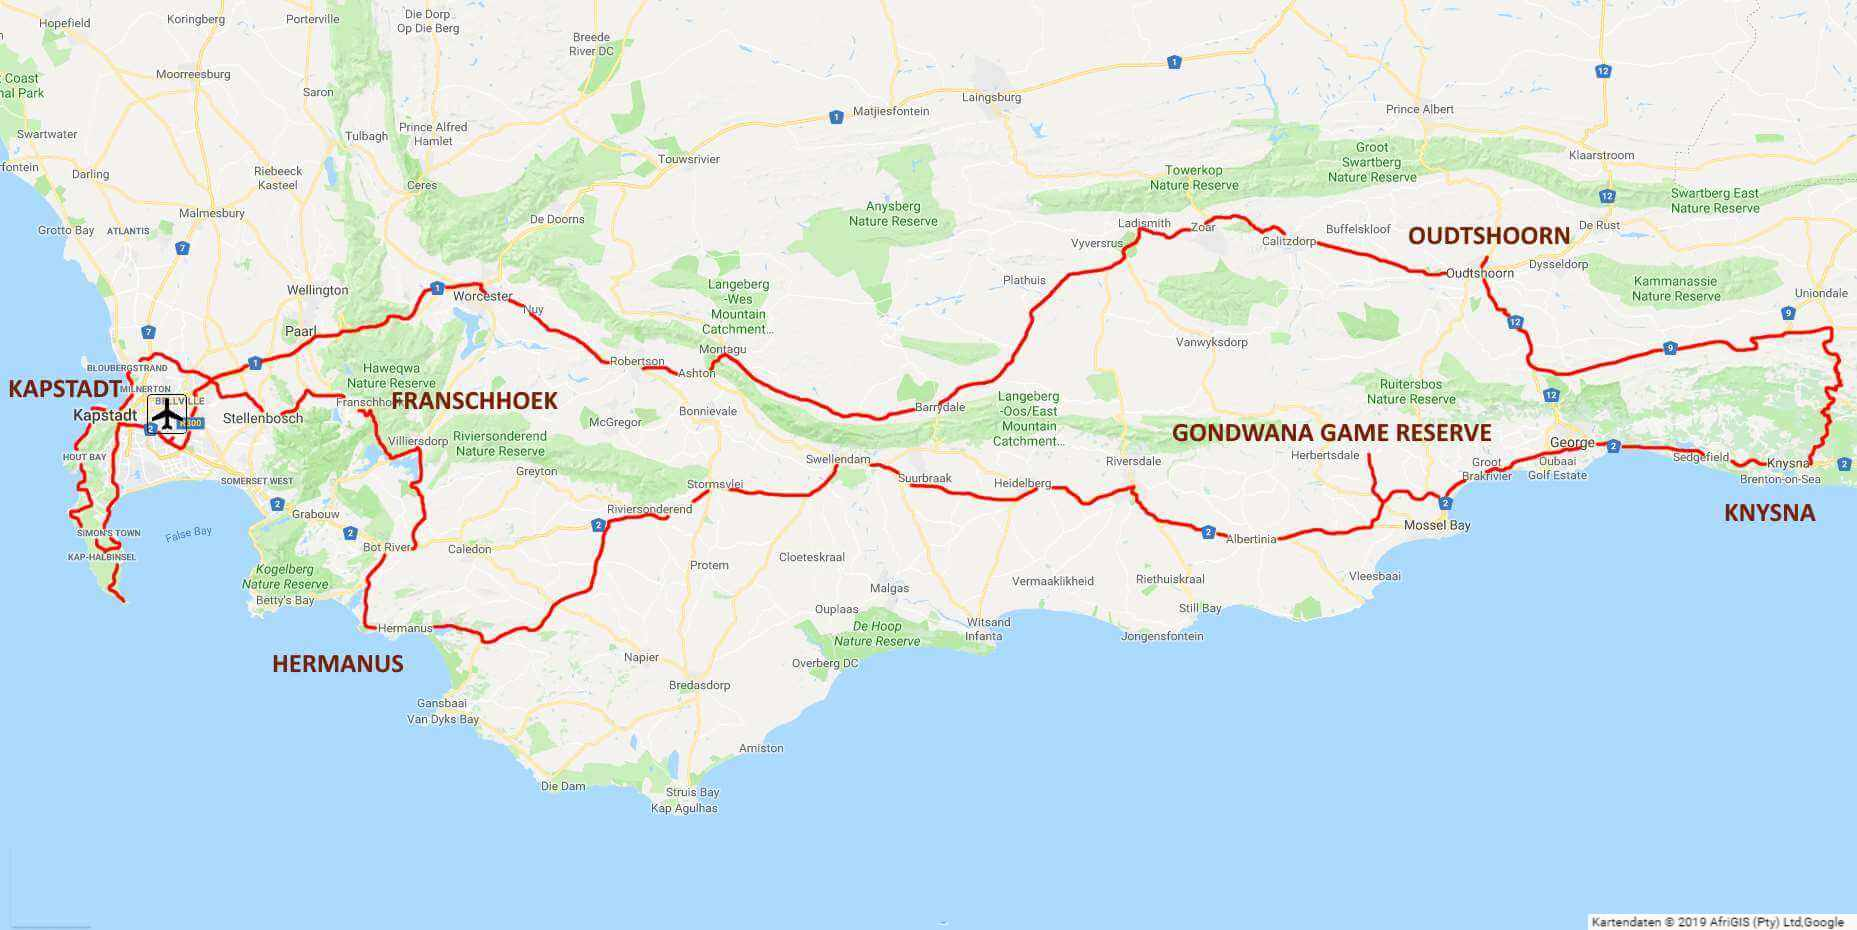 Cape and Garden Route circular